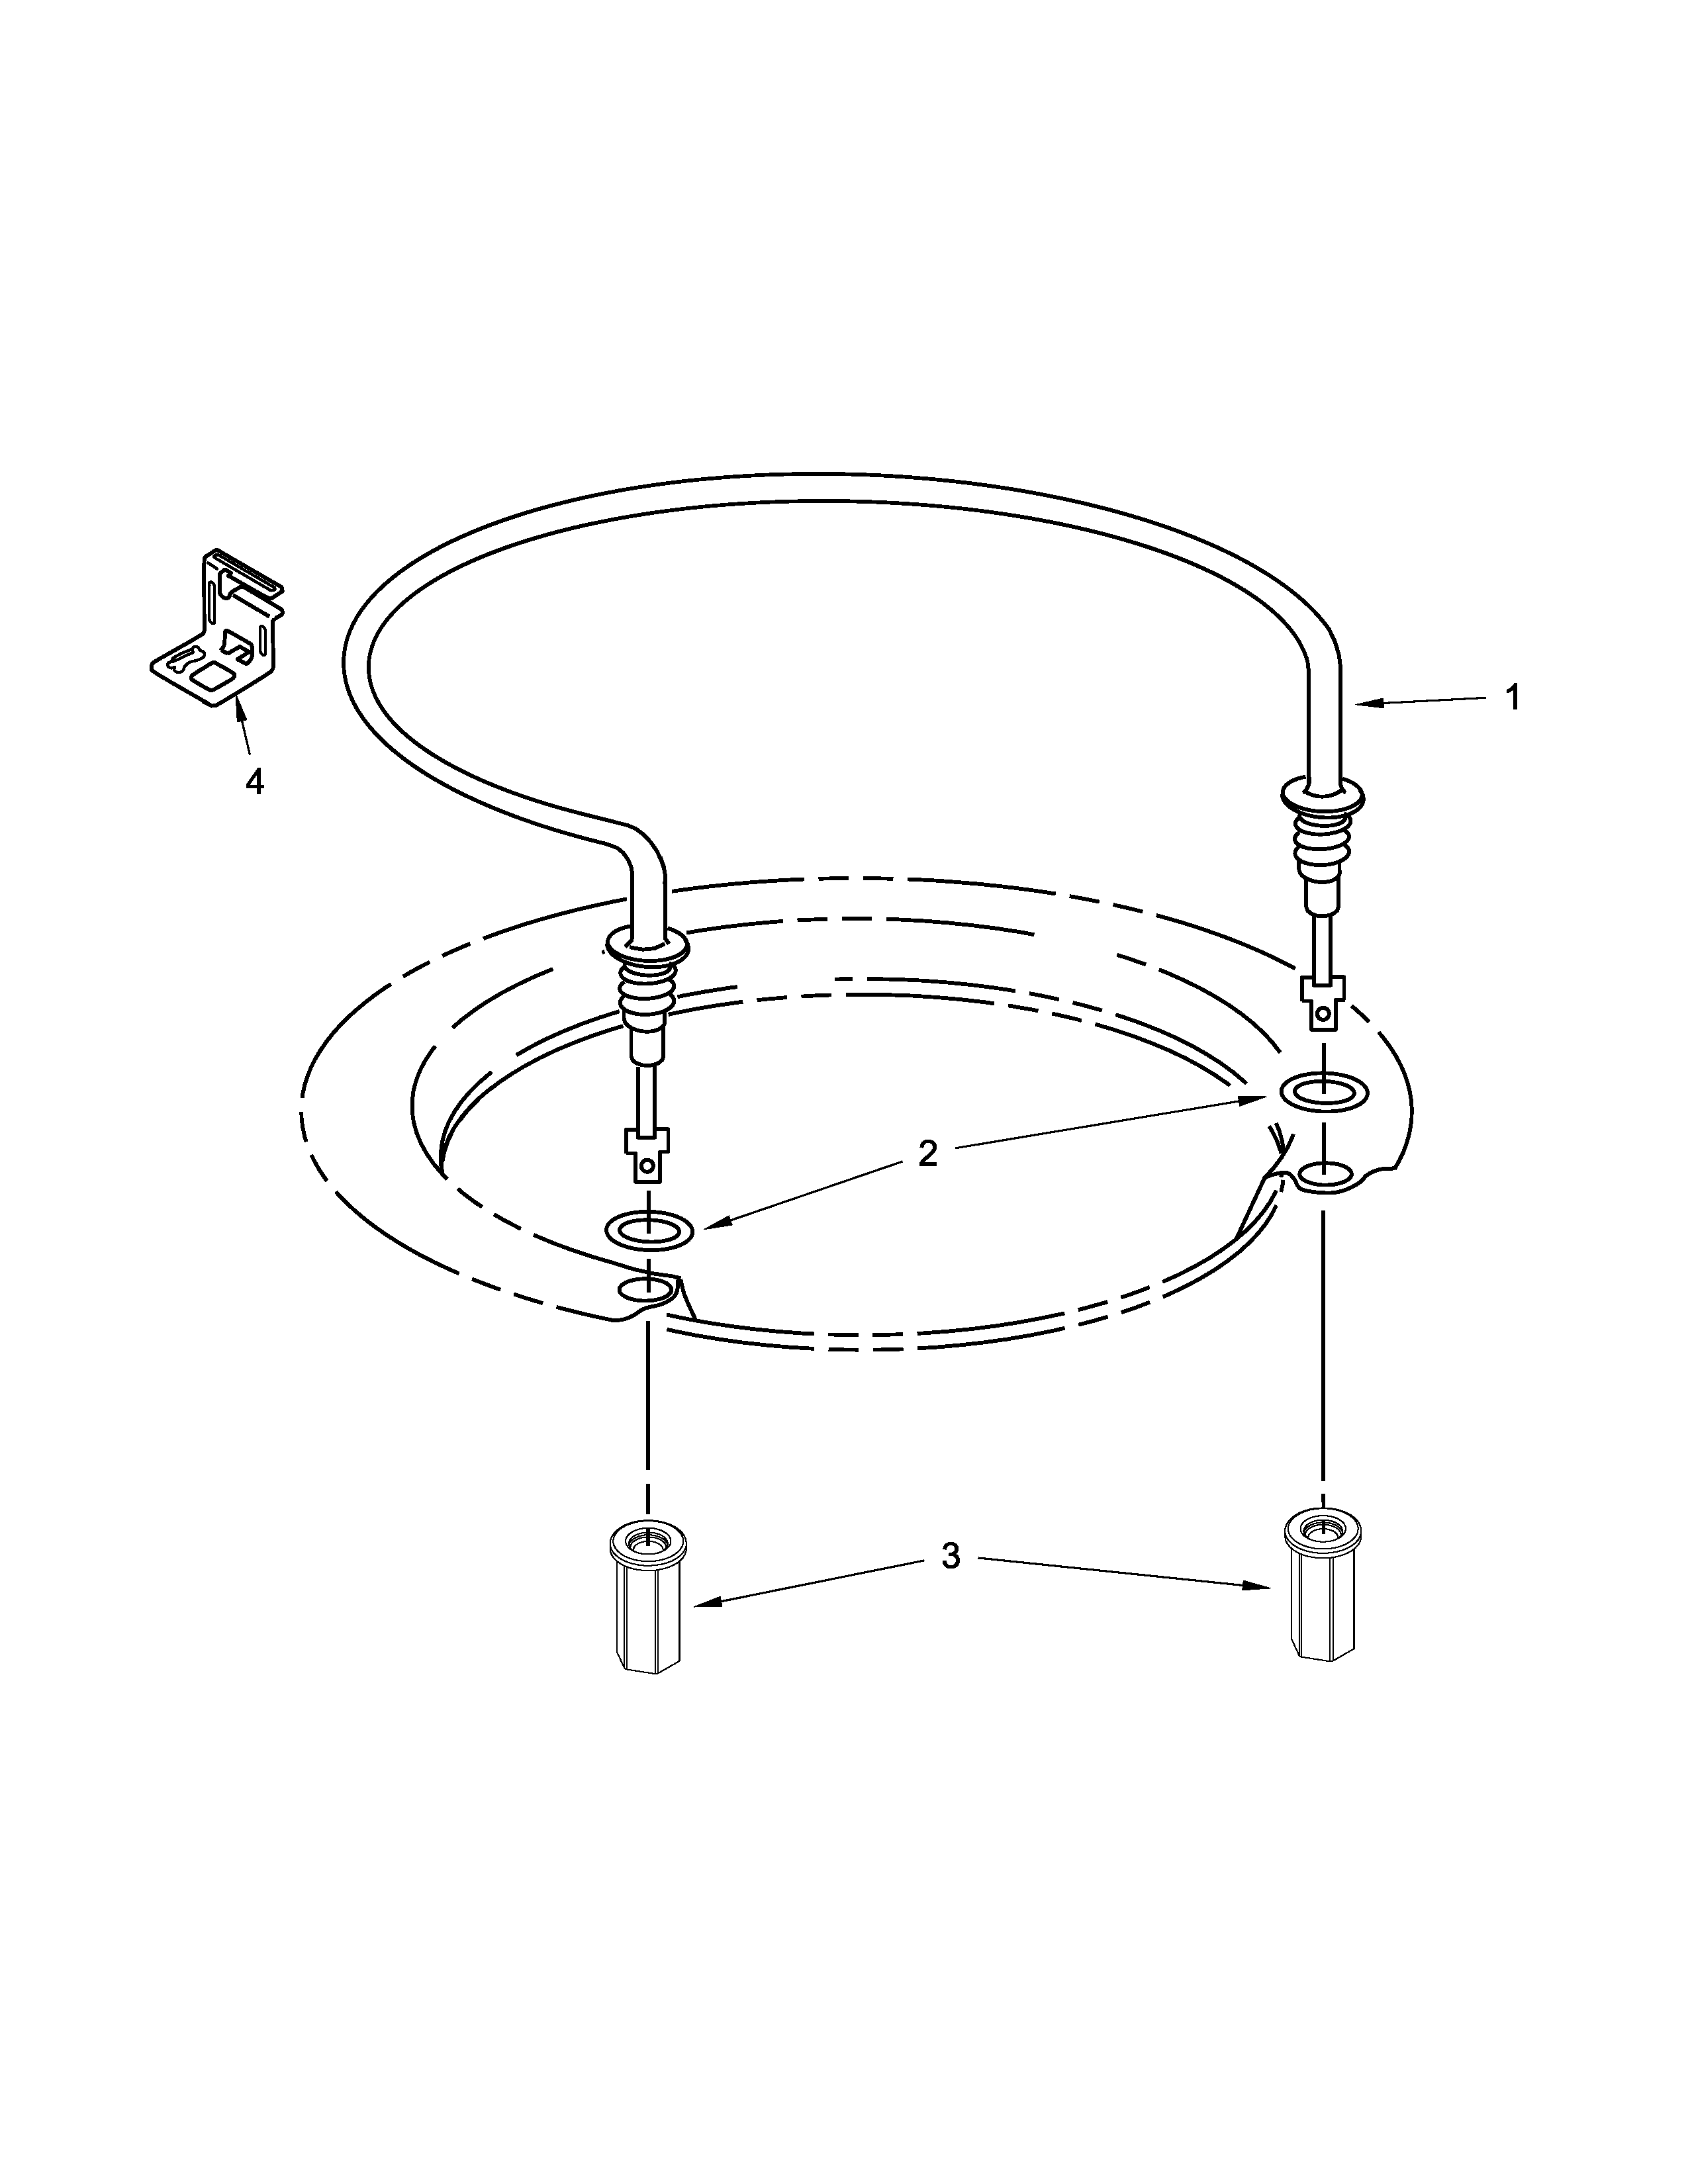 Whirlpool WDP350PAAW4 heater parts diagram